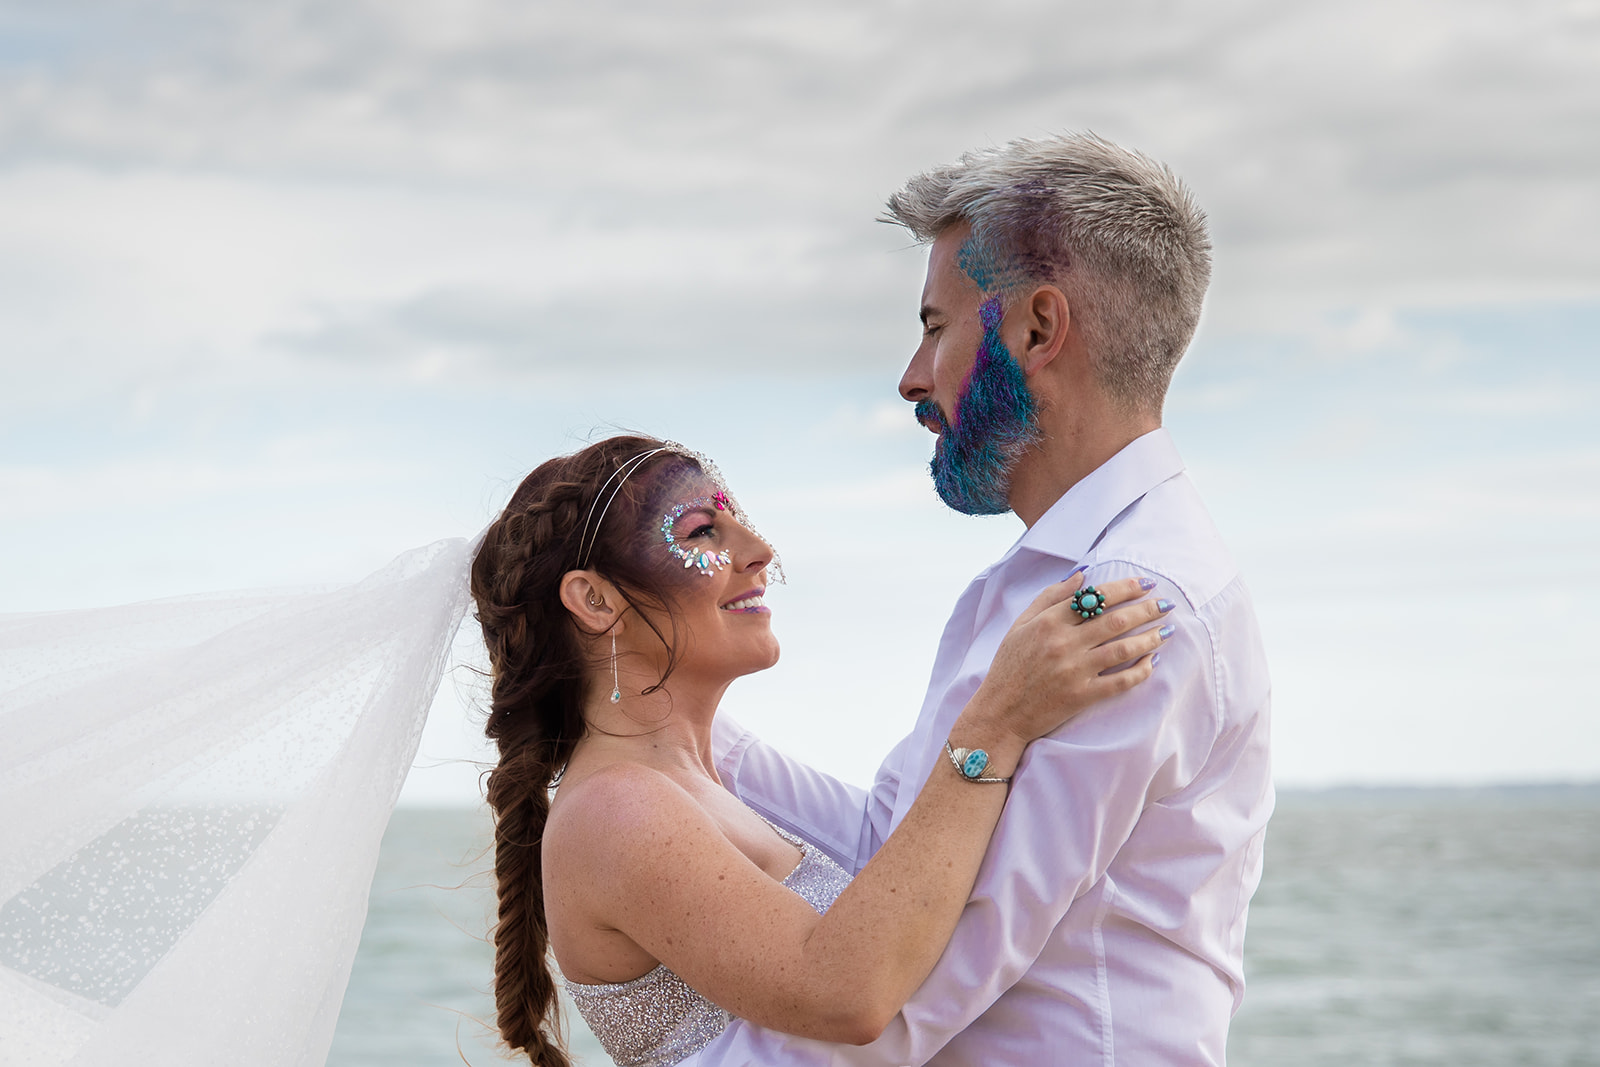 mermaid wedding - beach wedding - quirky wedding - unique wedding - alternative seaside wedding - alternative wedding - festival wedding makeup